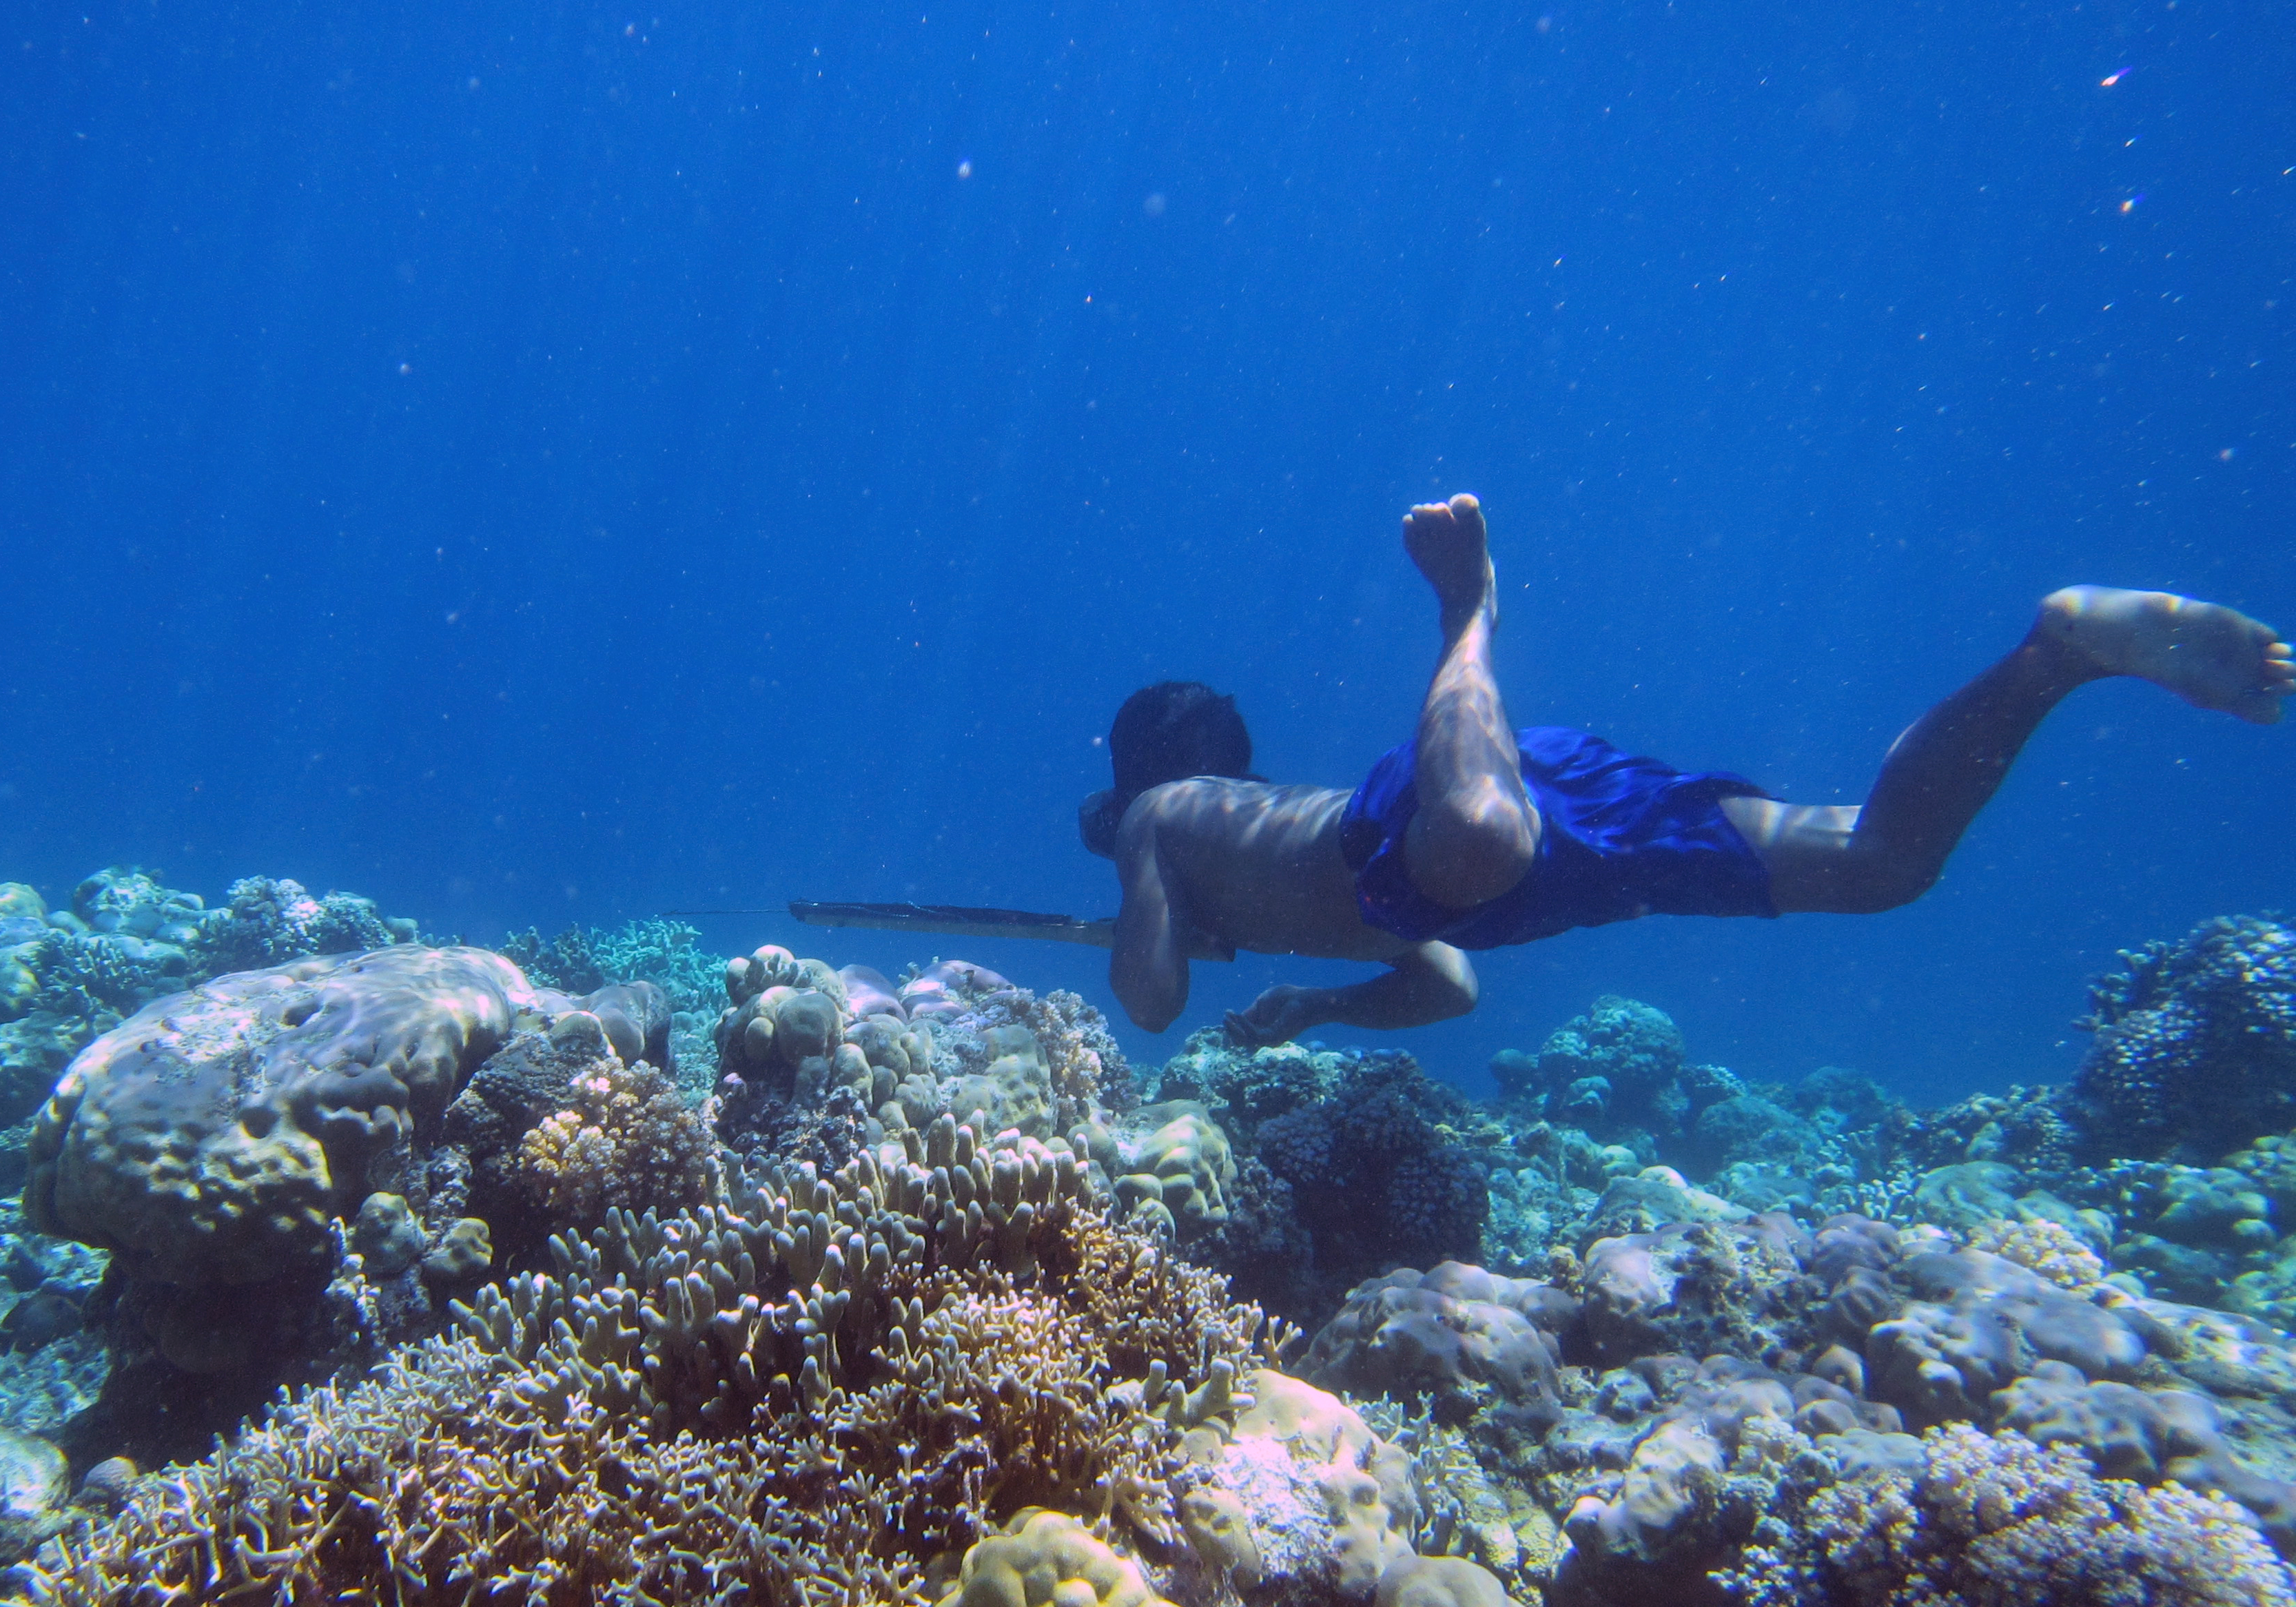 A Bajau diver hunts with a spear